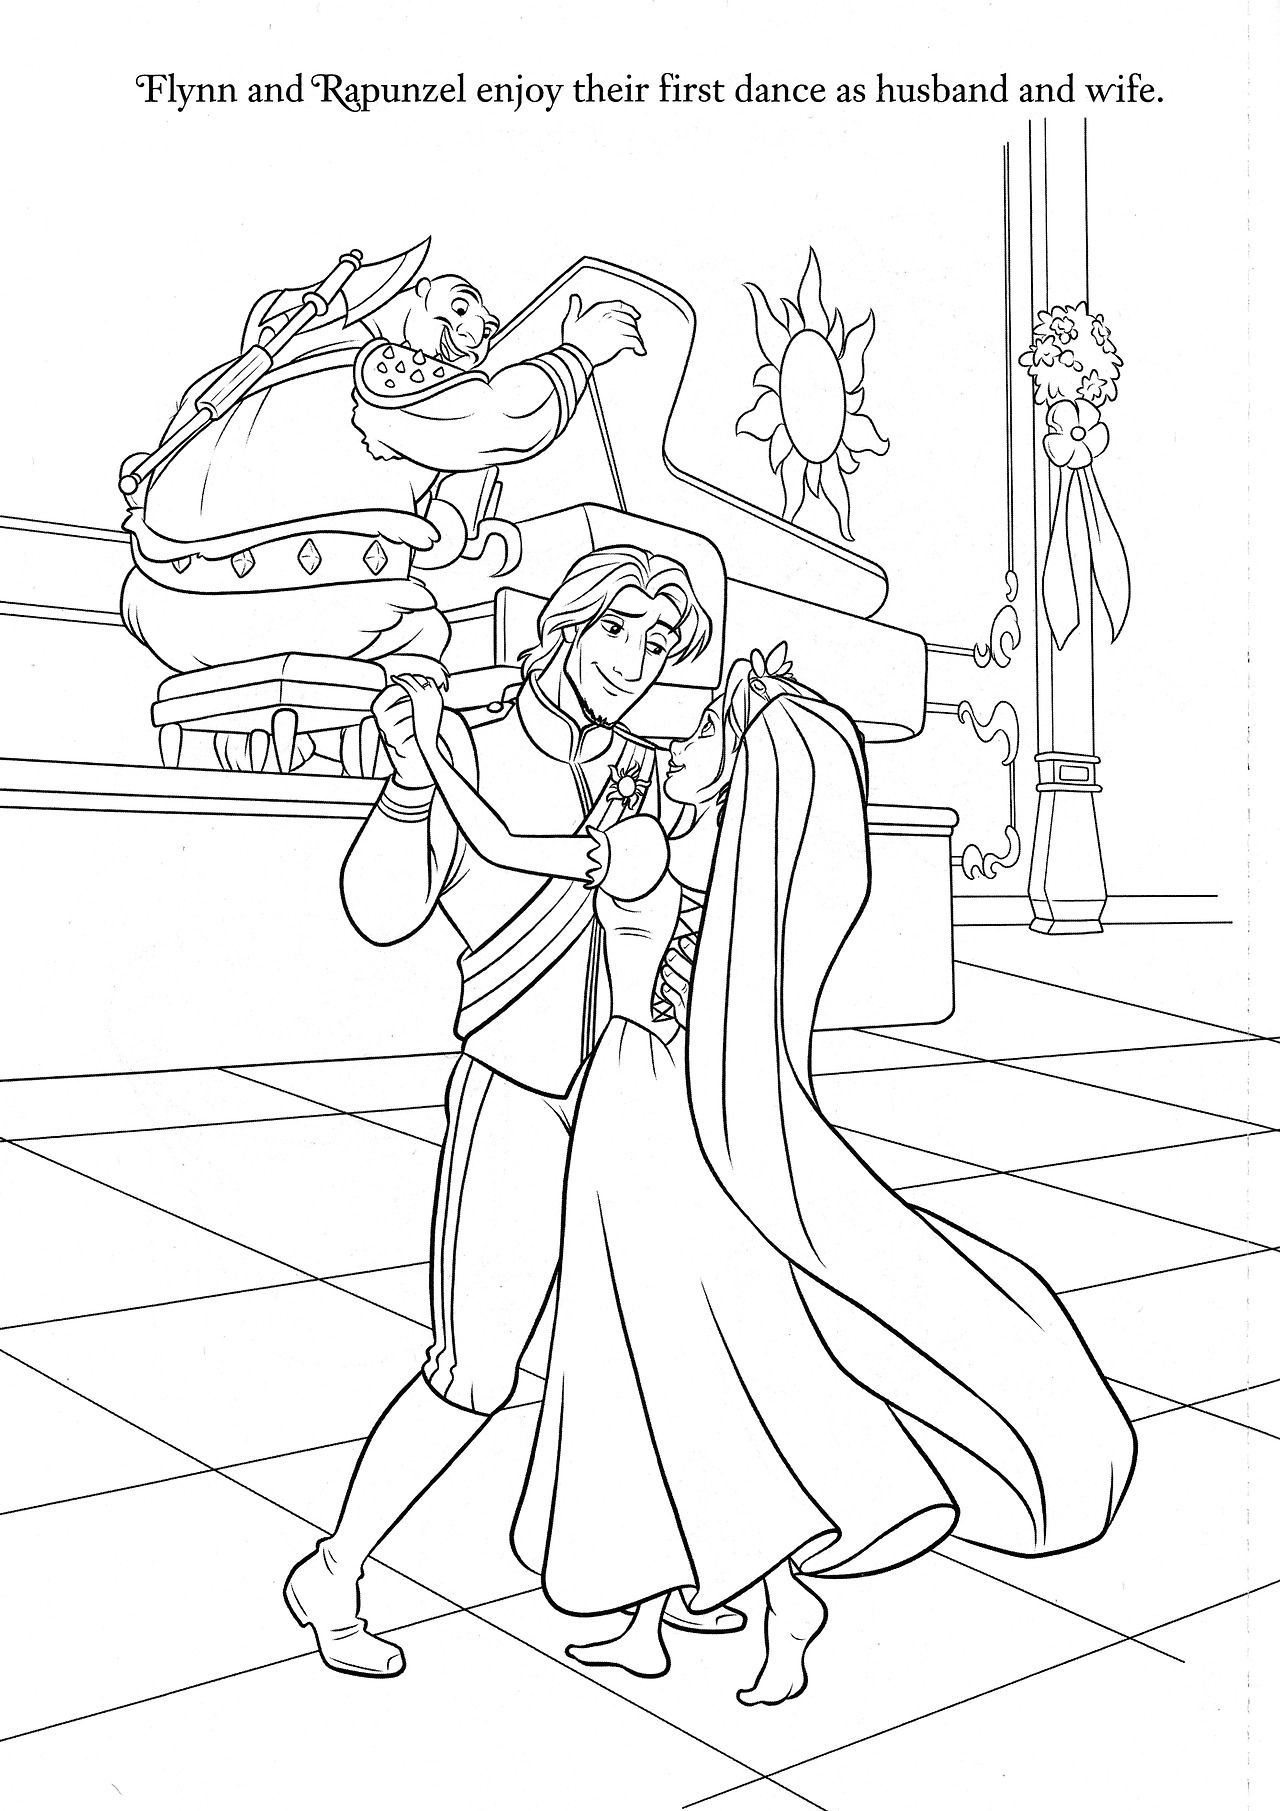 Flynn Rider and Rapunzel Wedding After Marriage Dance Tangled Coloring Pages